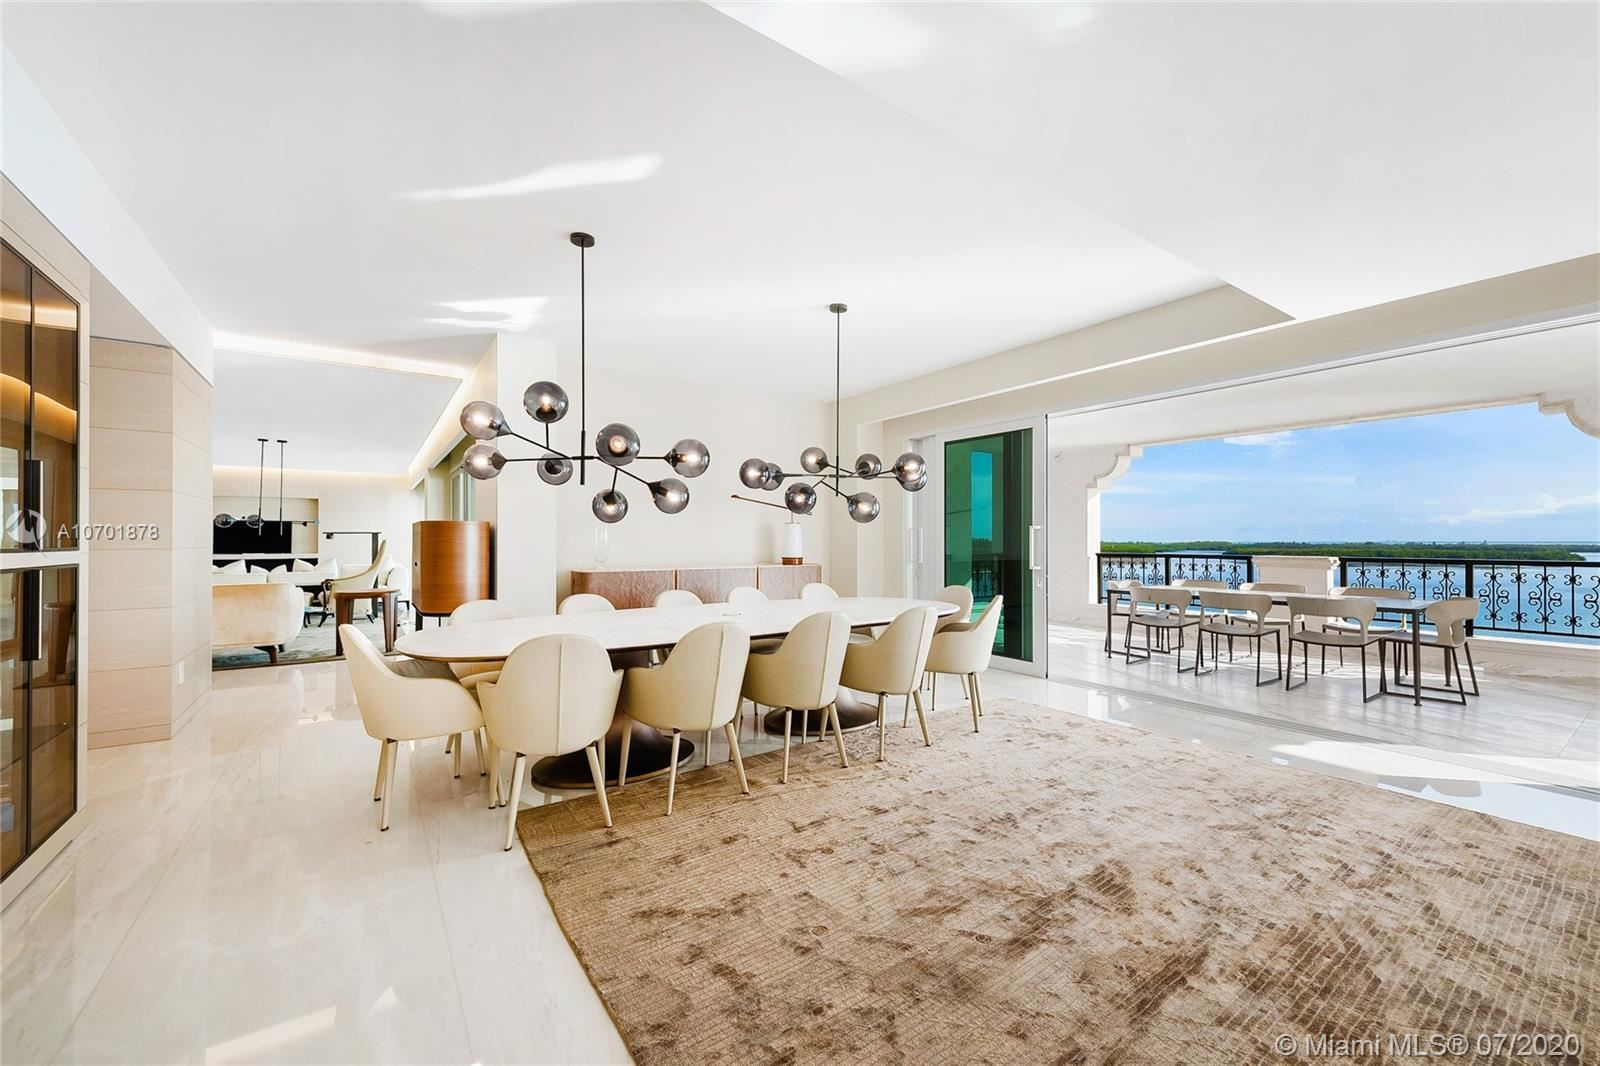 Photo 22 of Listing MLS a10701878 in 5292 Fisher Island Dr #5292 Miami FL 33109